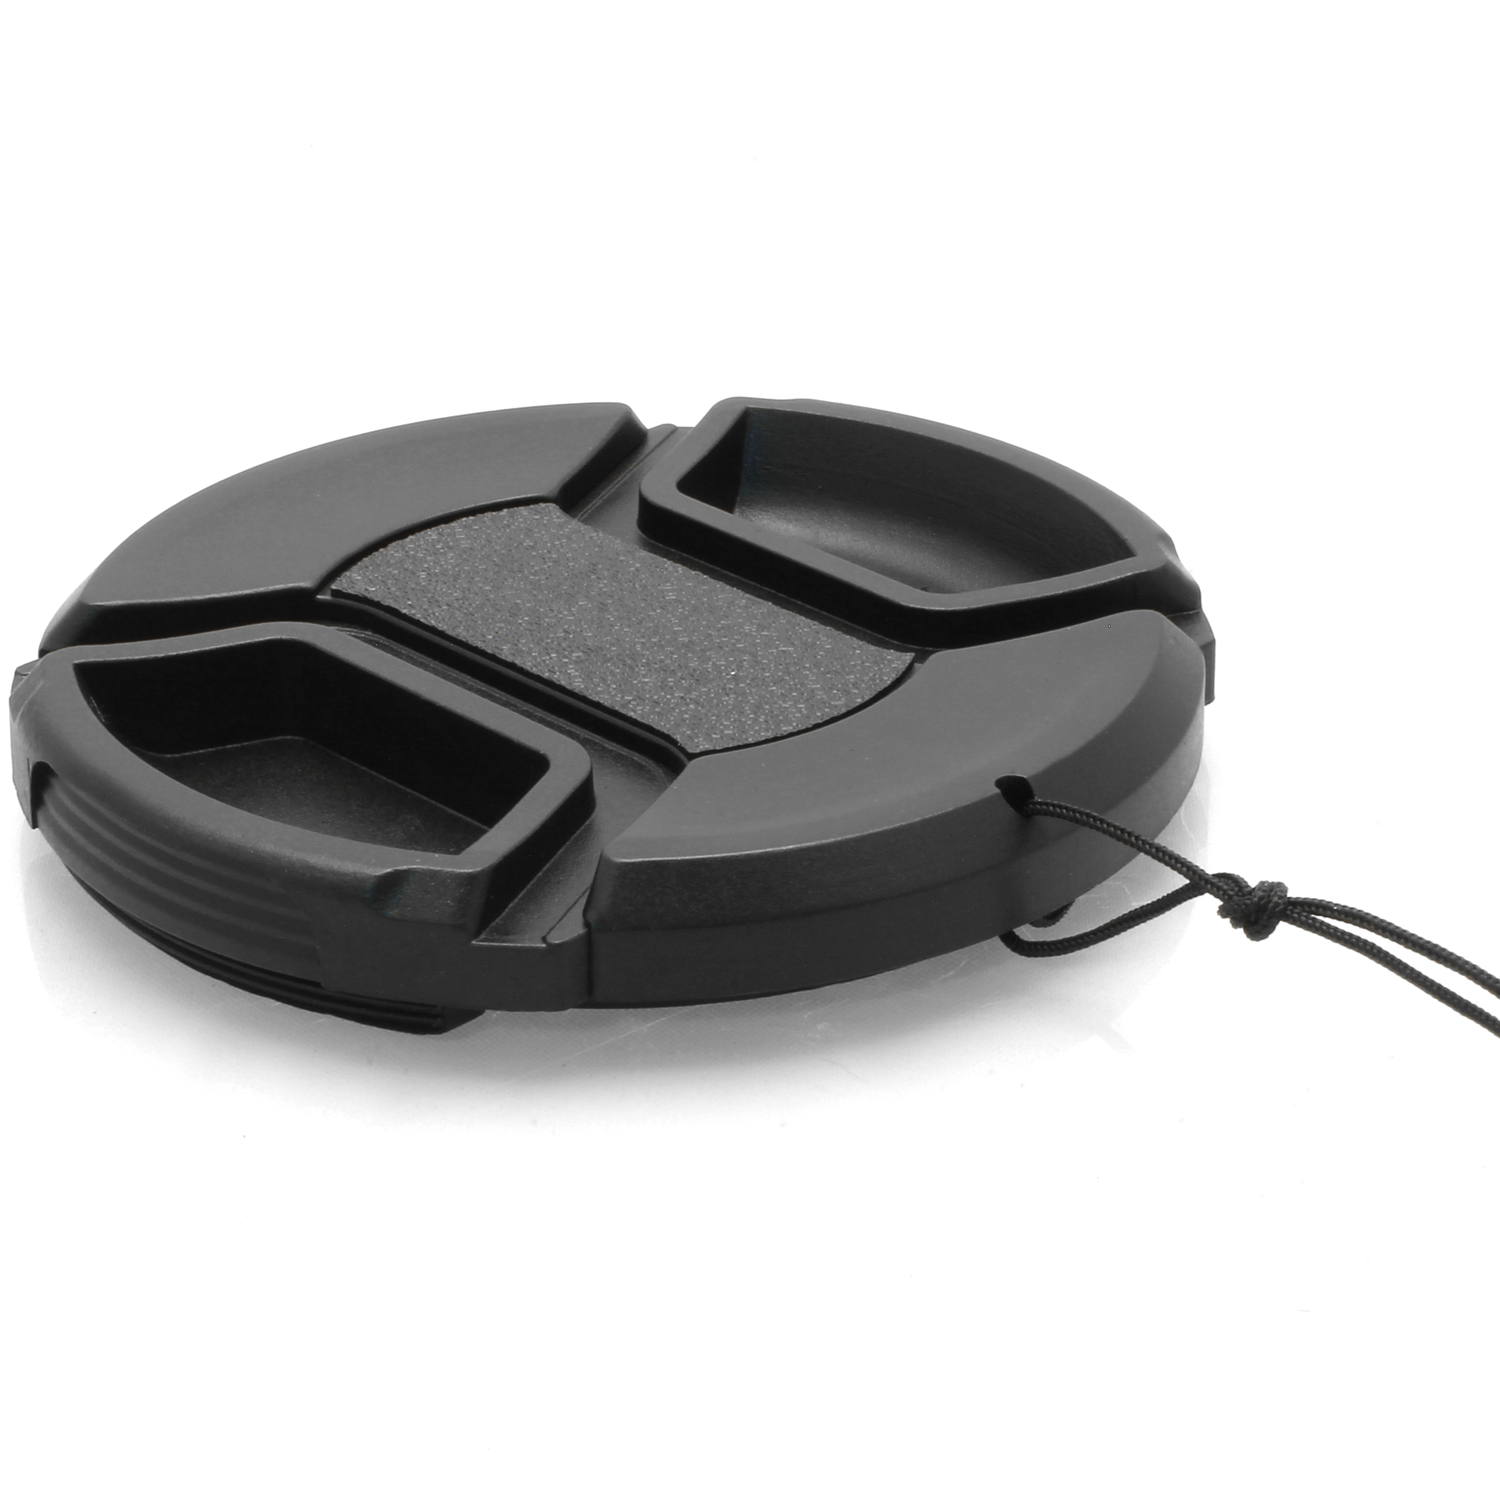 iGadgitz Xtra 77mm Centre Pinch Snap-On Lens Hood Cap Cover with Cord for SLR & DSLR Cameras